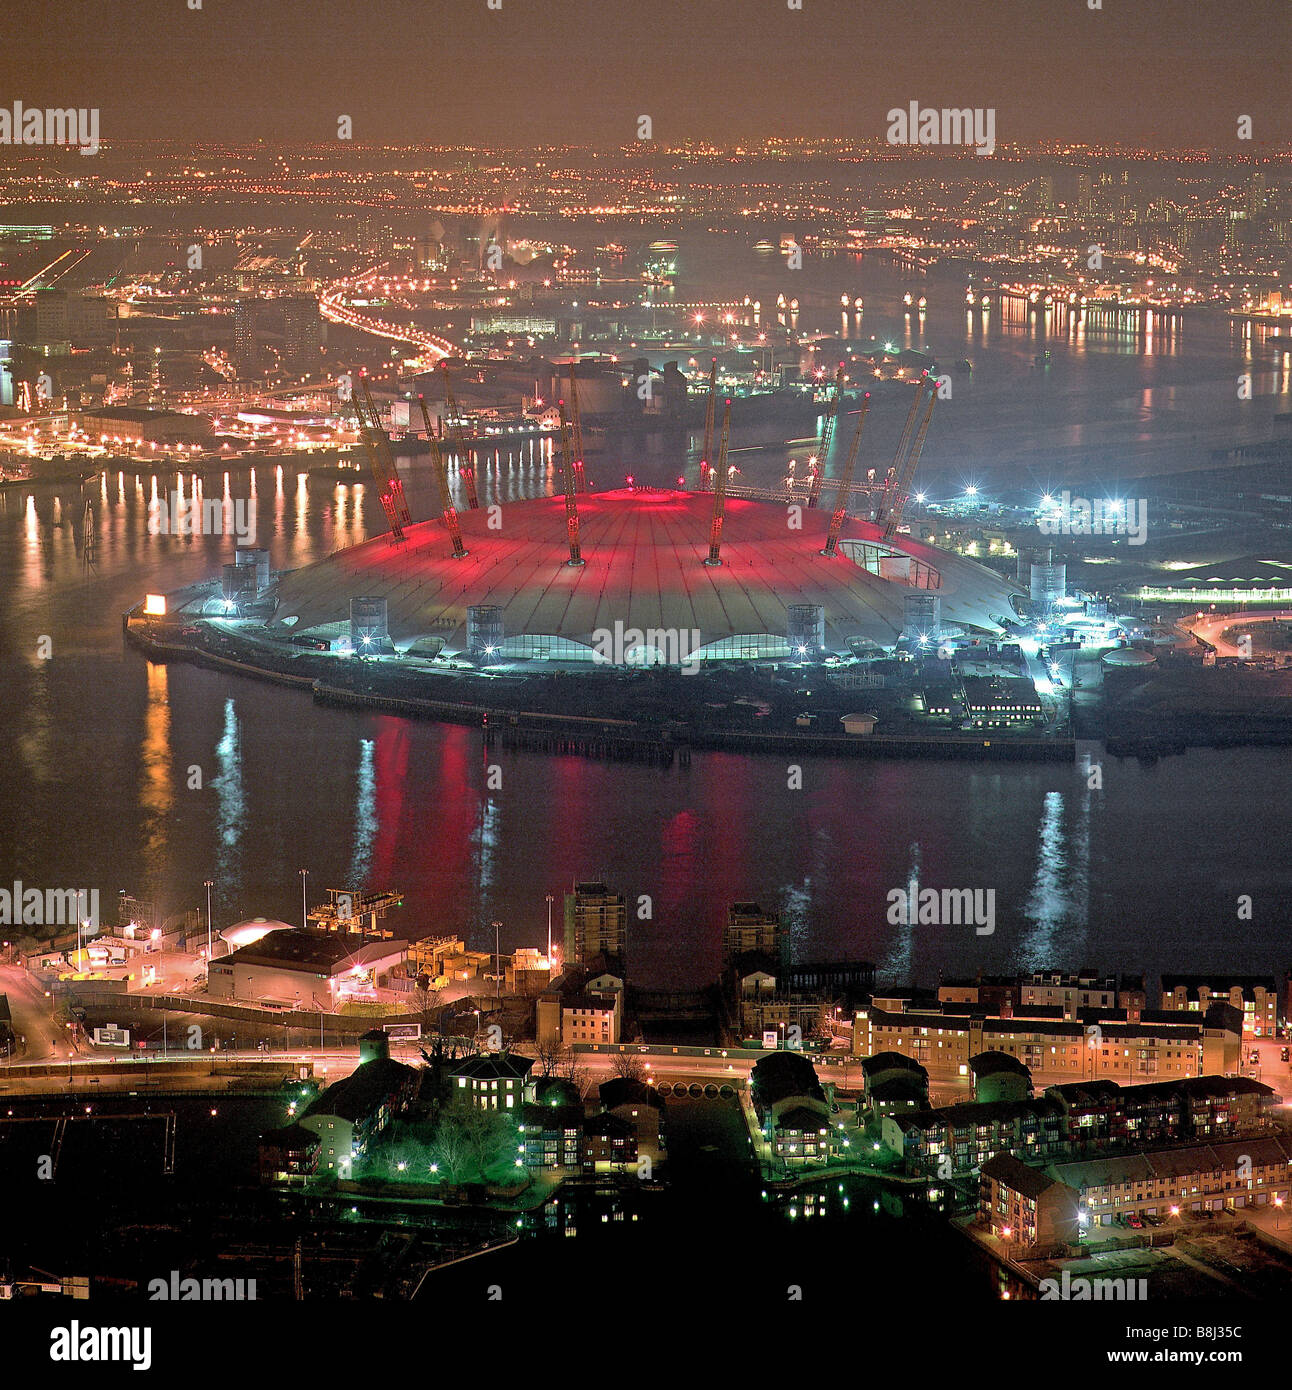 The Millennium Dome/O2 Arena in London decorated with 'red nose' for Comic Relief, a charity providing money for Stock Photo